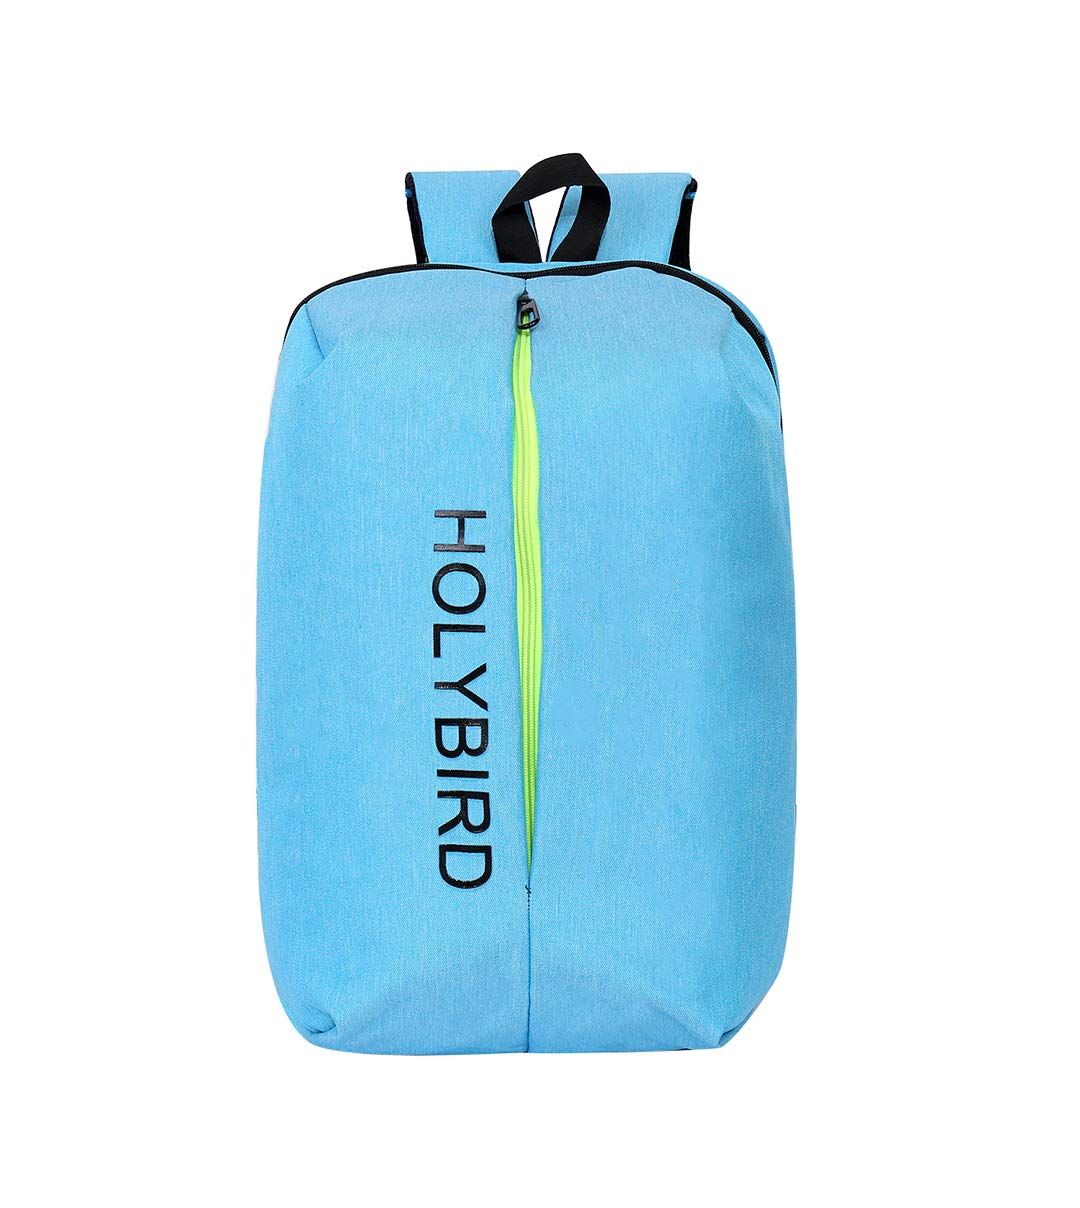 bluee HOLYBIRD Waterproof Backpack PU Leather Mini Women Purse for School Shopping Dating